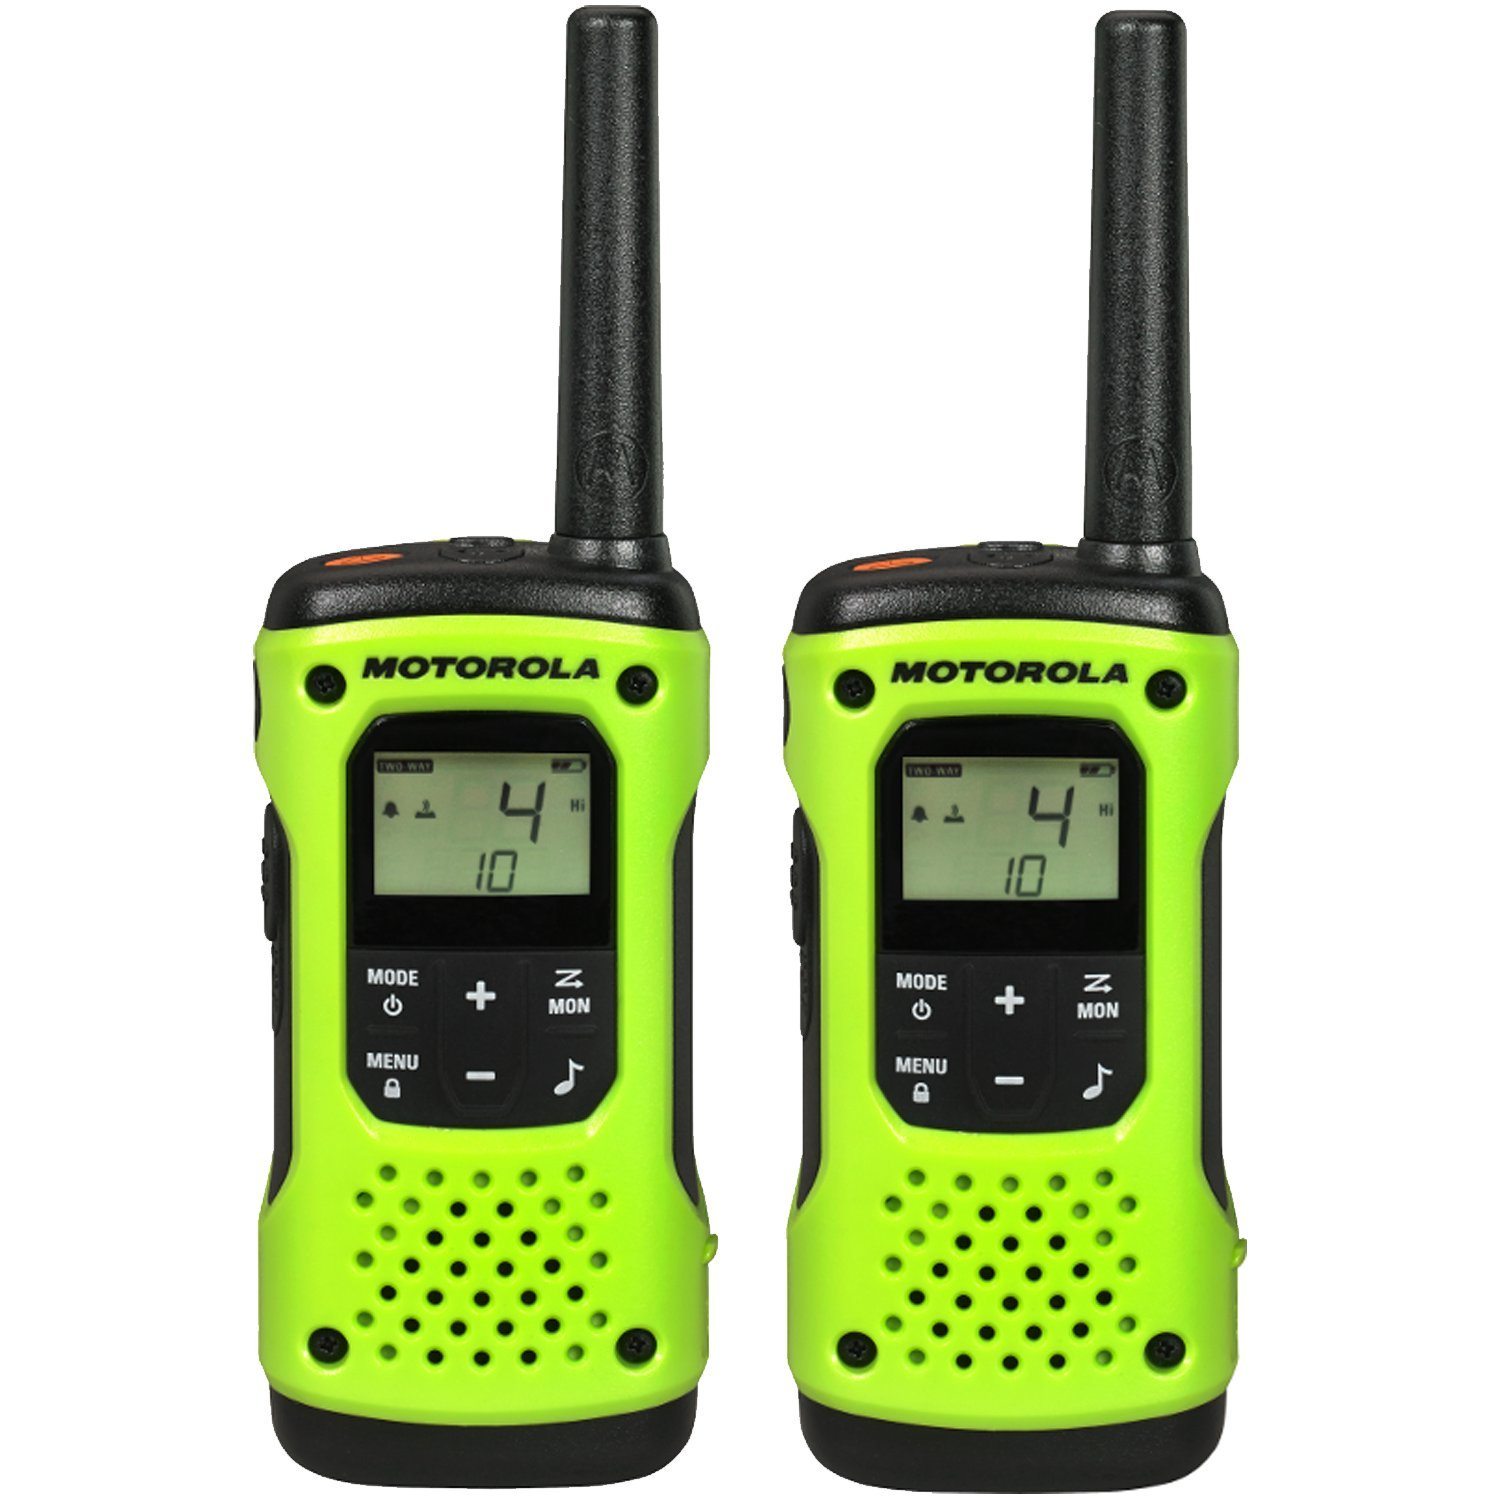 Motorola T600 Review (H20 Two-Way Talkabout)